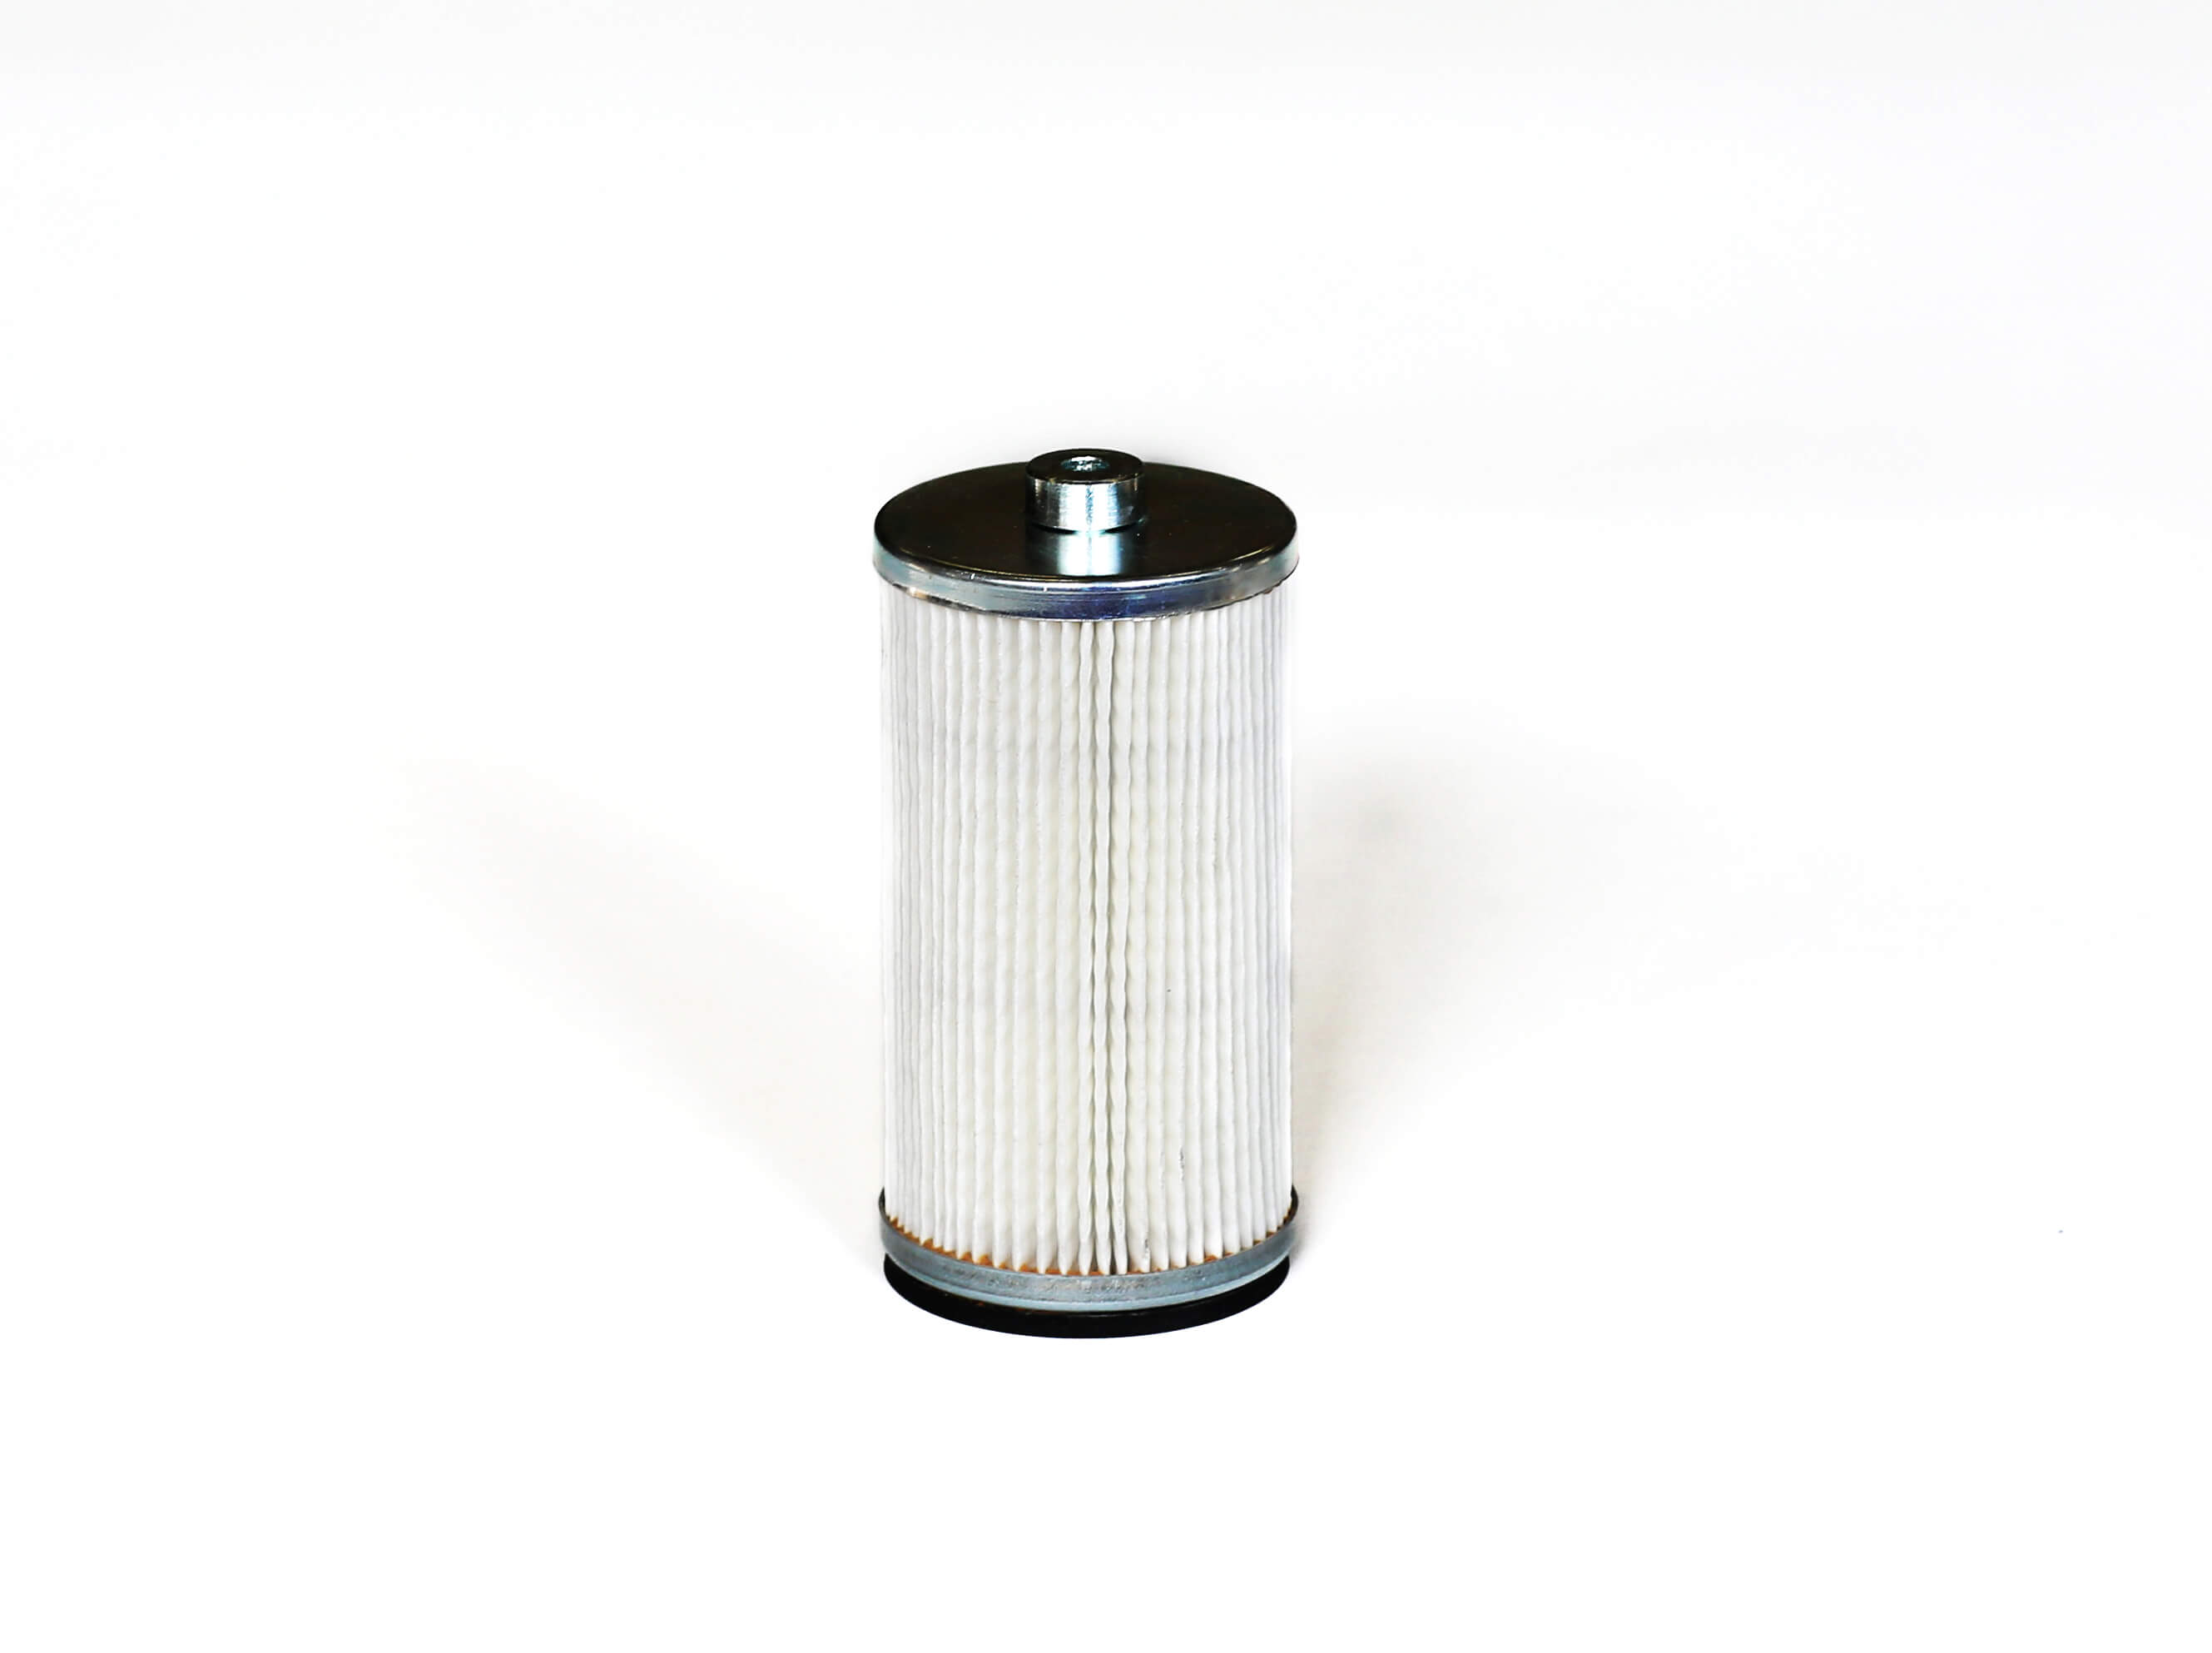 Rietschle vacuum pump air filter element